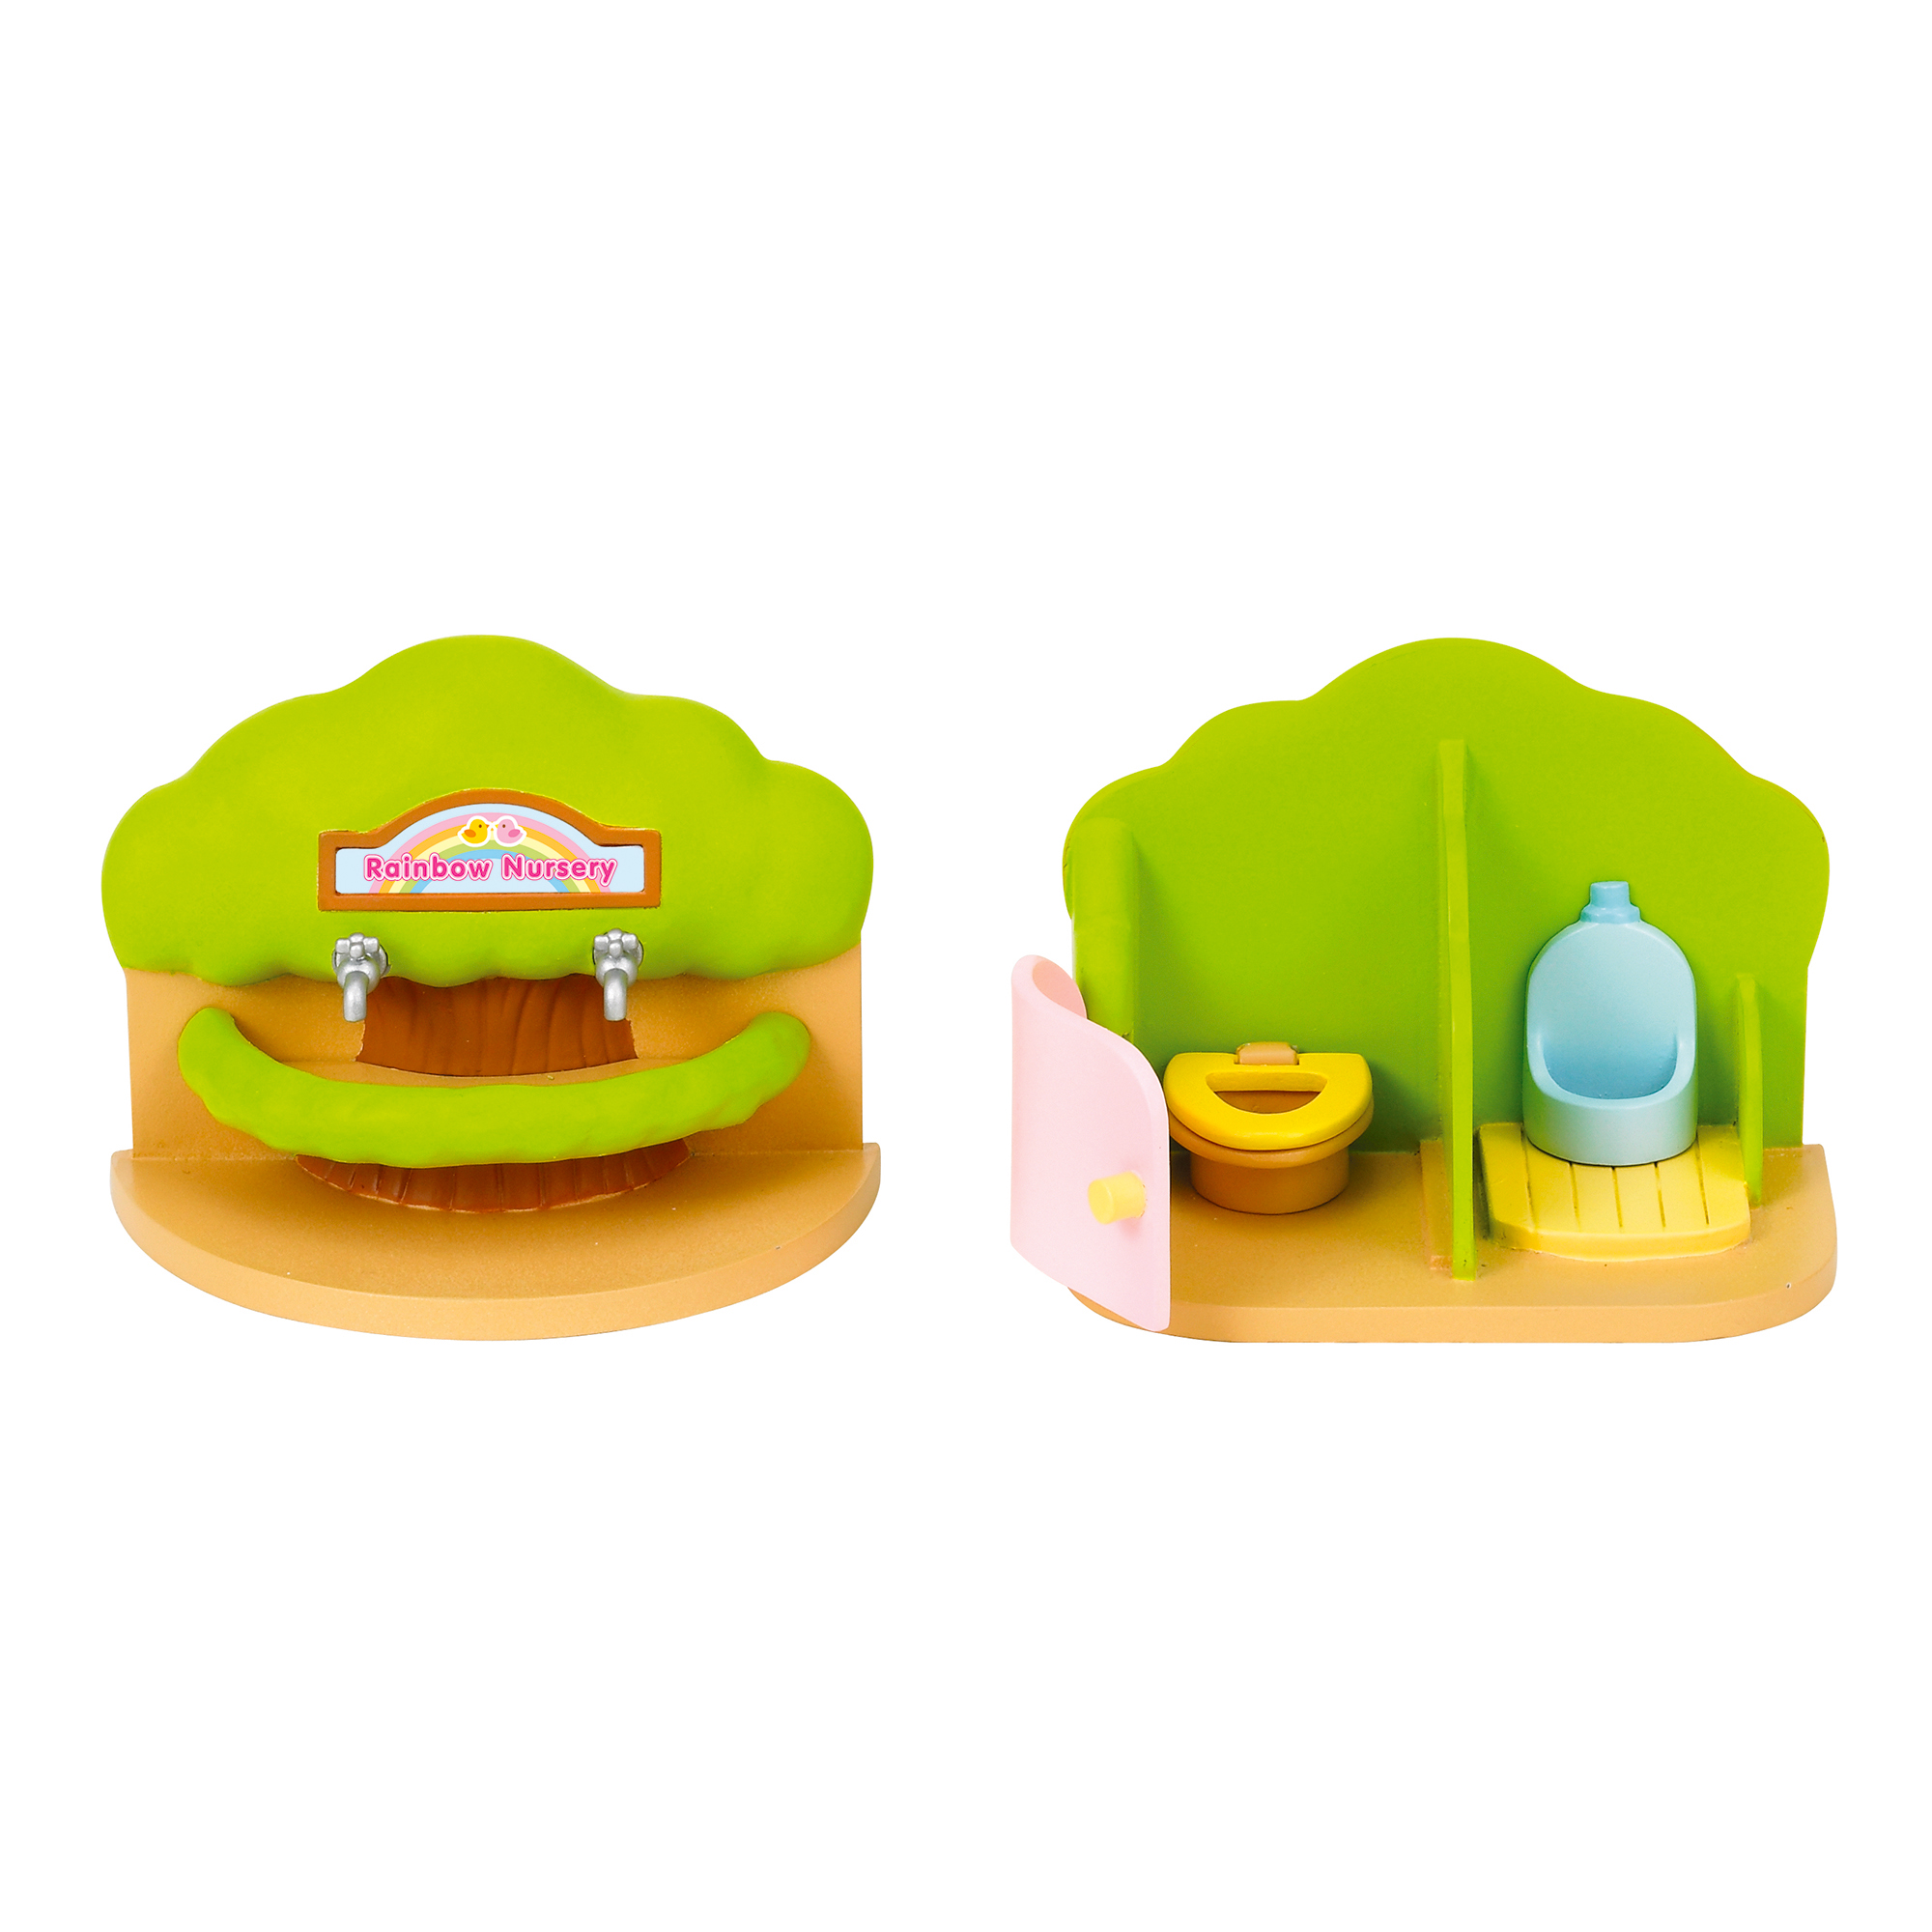 Sylvanian Families Nursery Bathroom Set